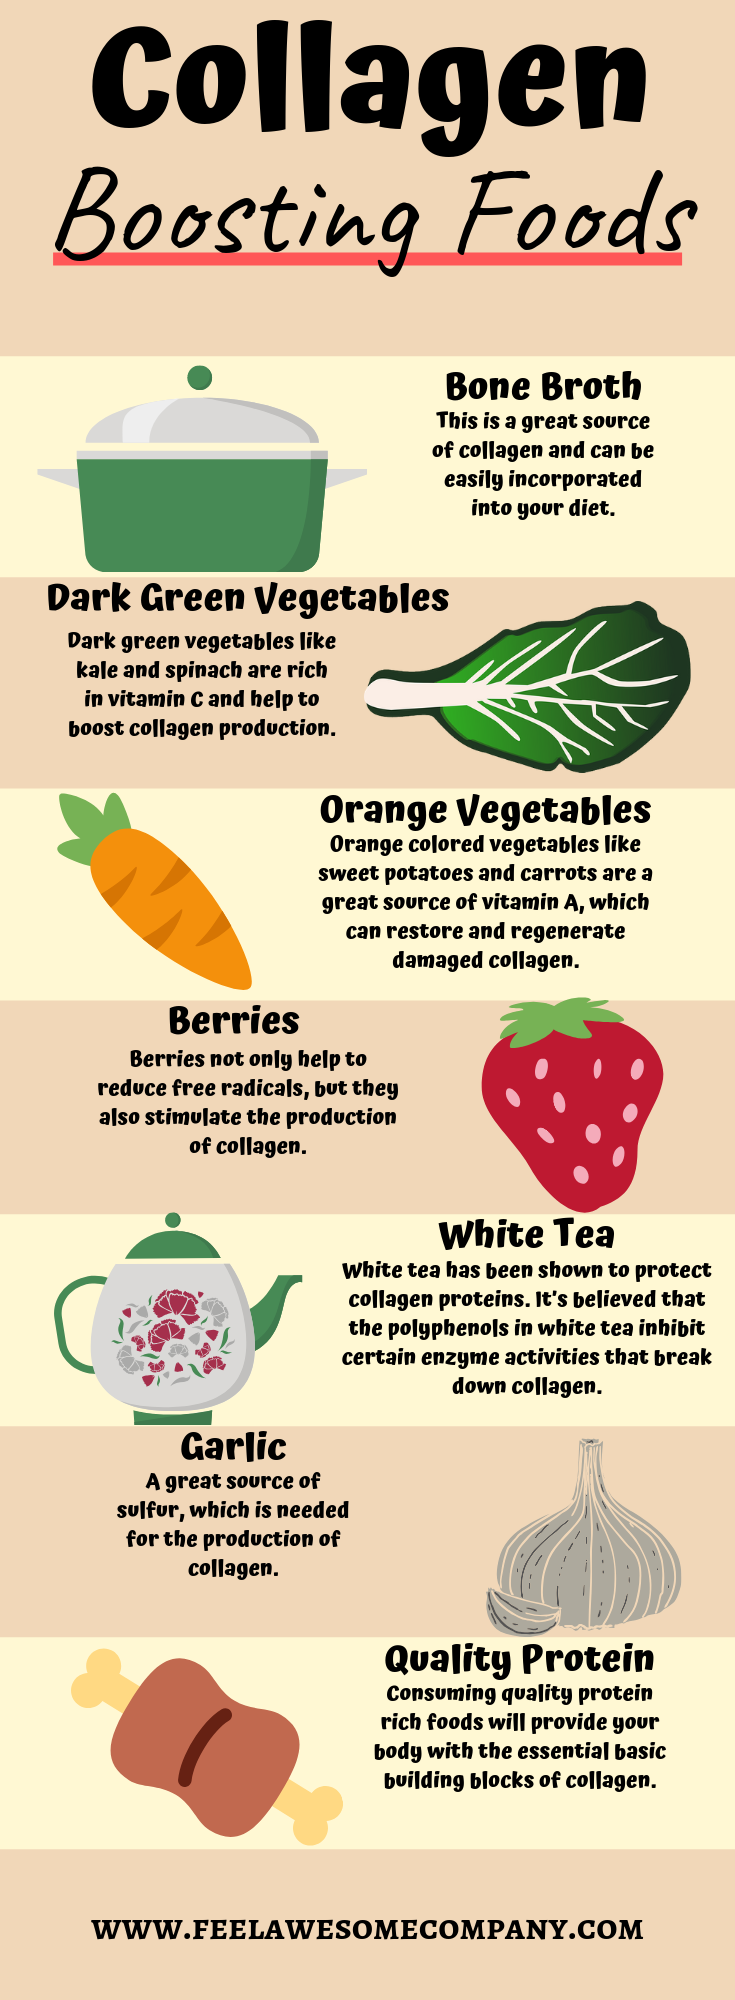 Here Are Some Of The Best Foods That Either Contain Collagen Or Help Your Body Produce And Utilize Collag Collagen Boosting Foods Boost Foods Food Infographic